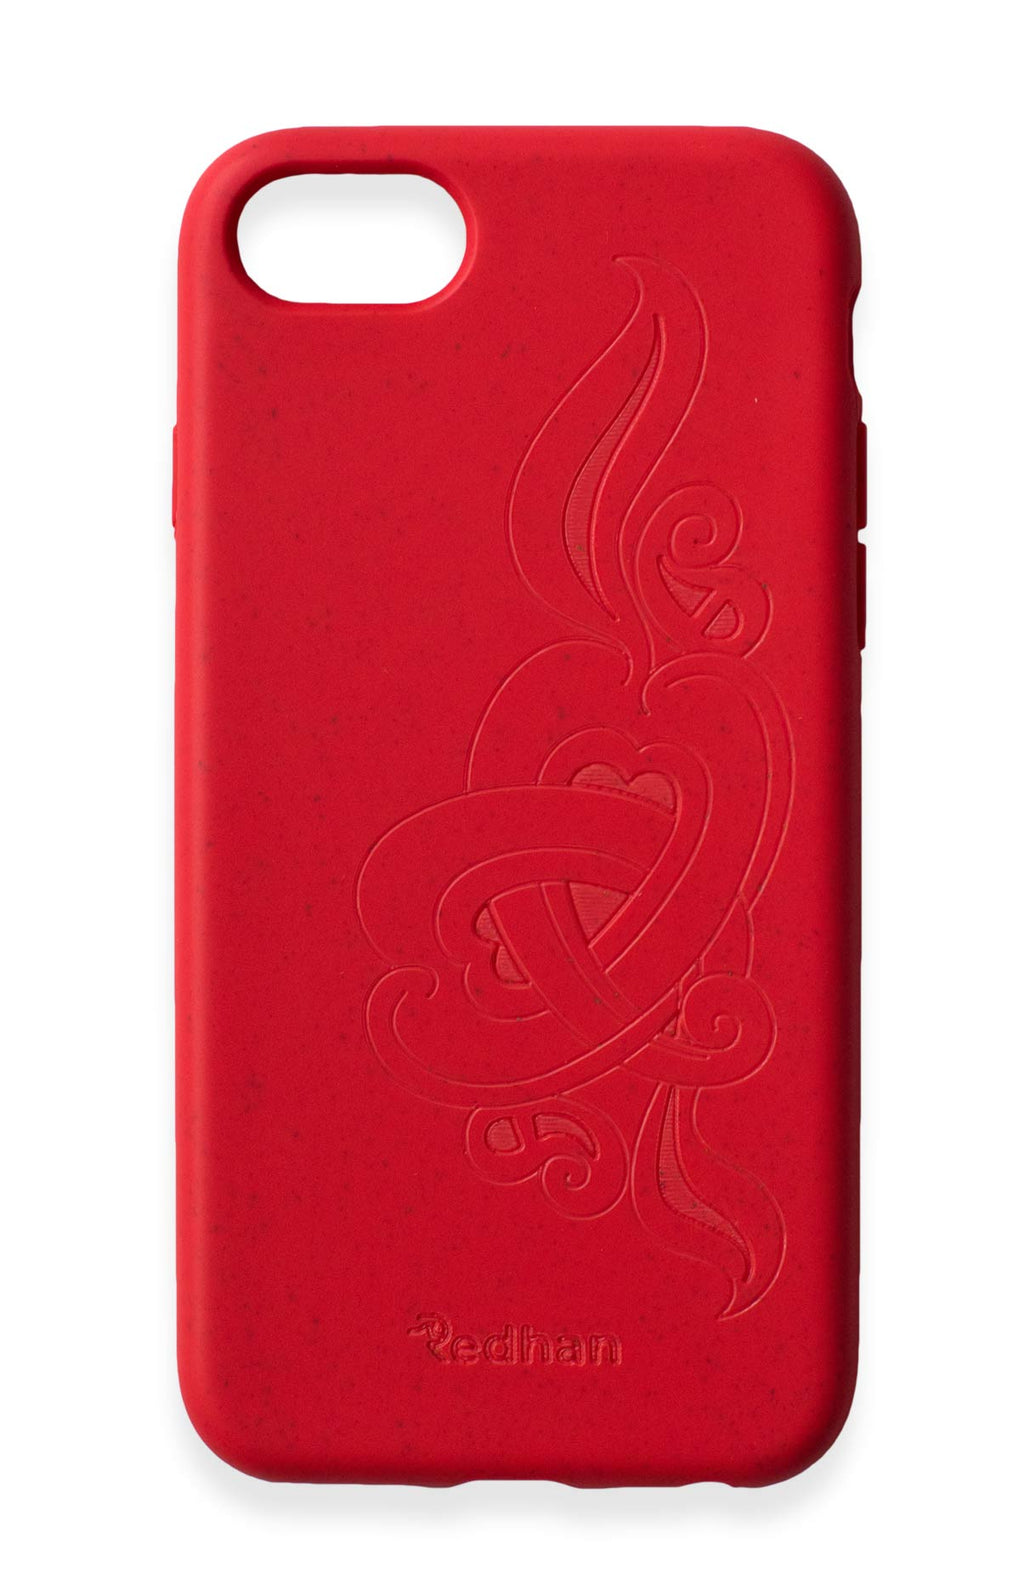 'Hirigaa' or Stone Art in Ruby Red - iPhone 6+/6S+/7+/8+